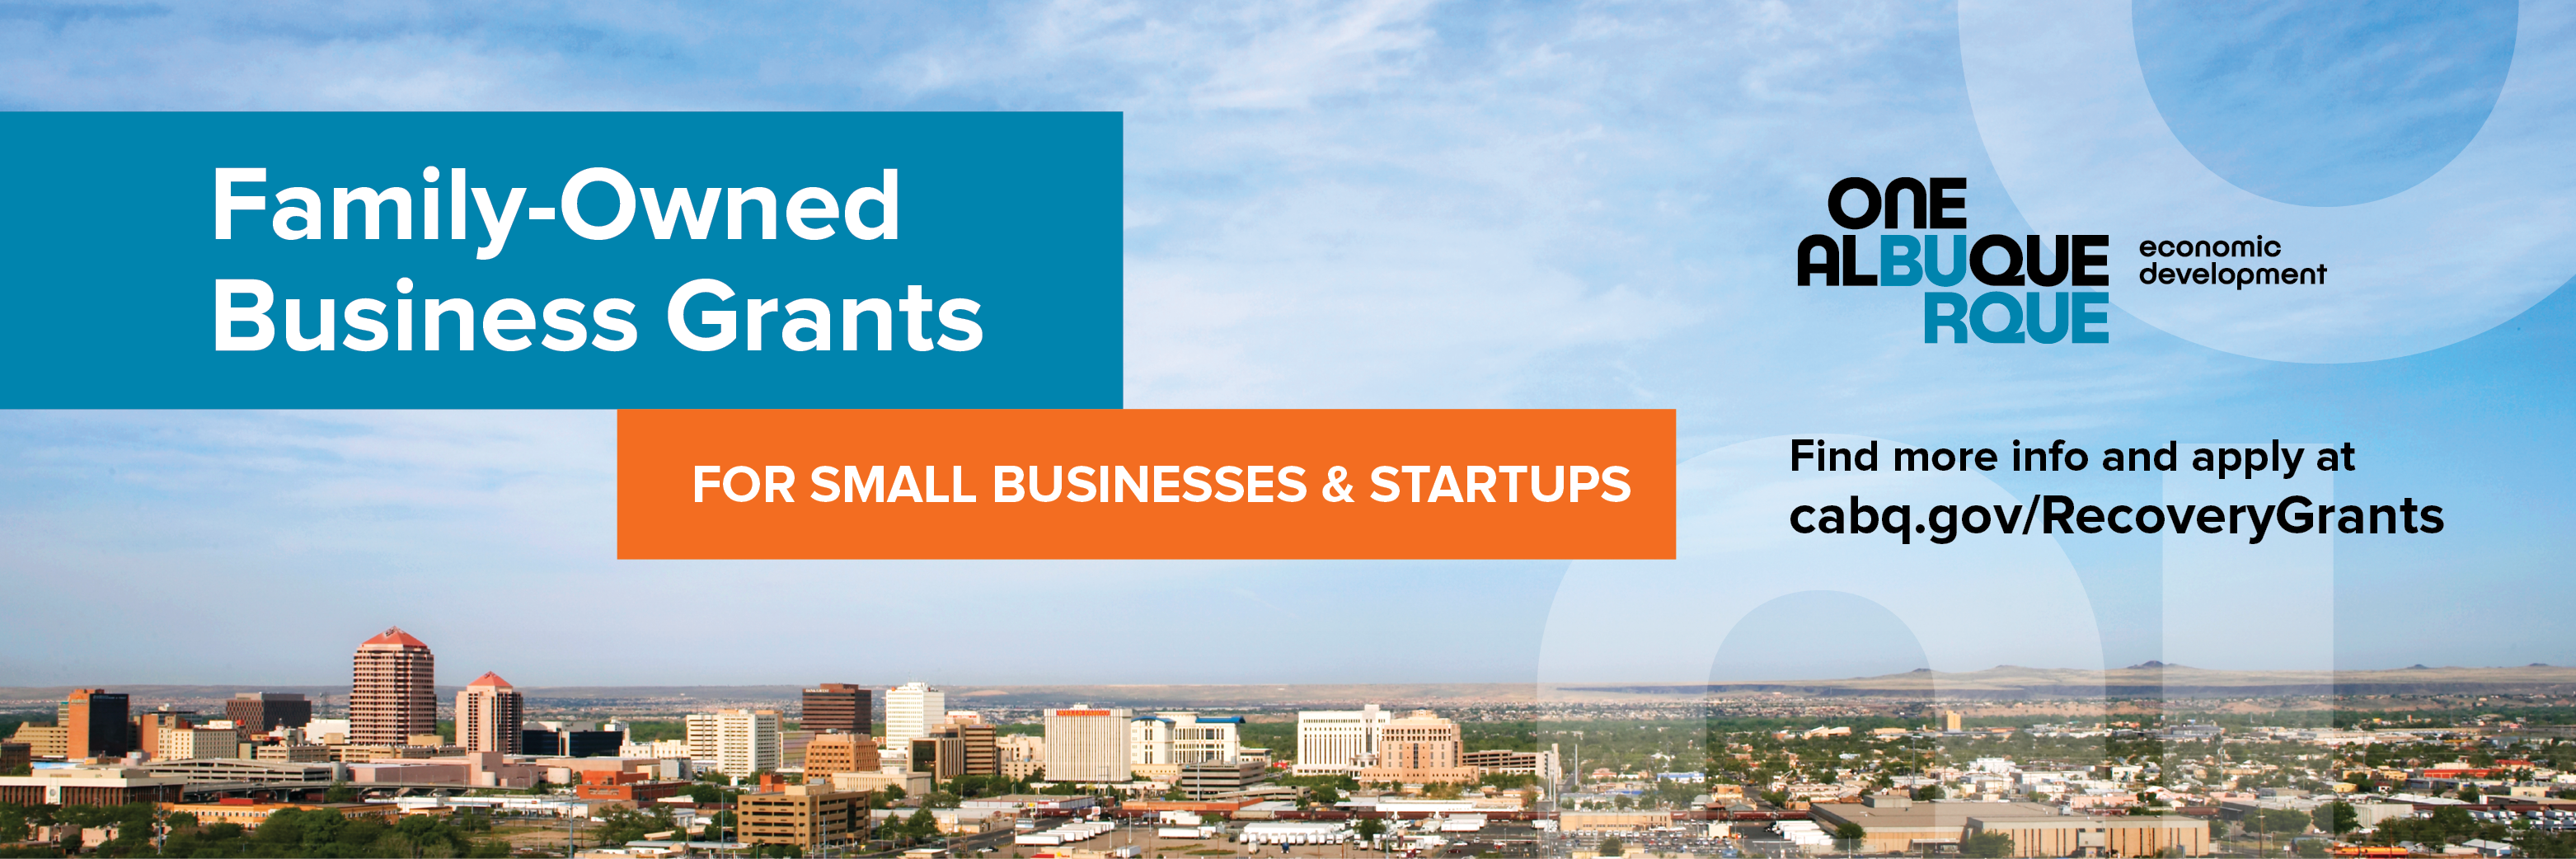 Family-Owned Business Grant Header